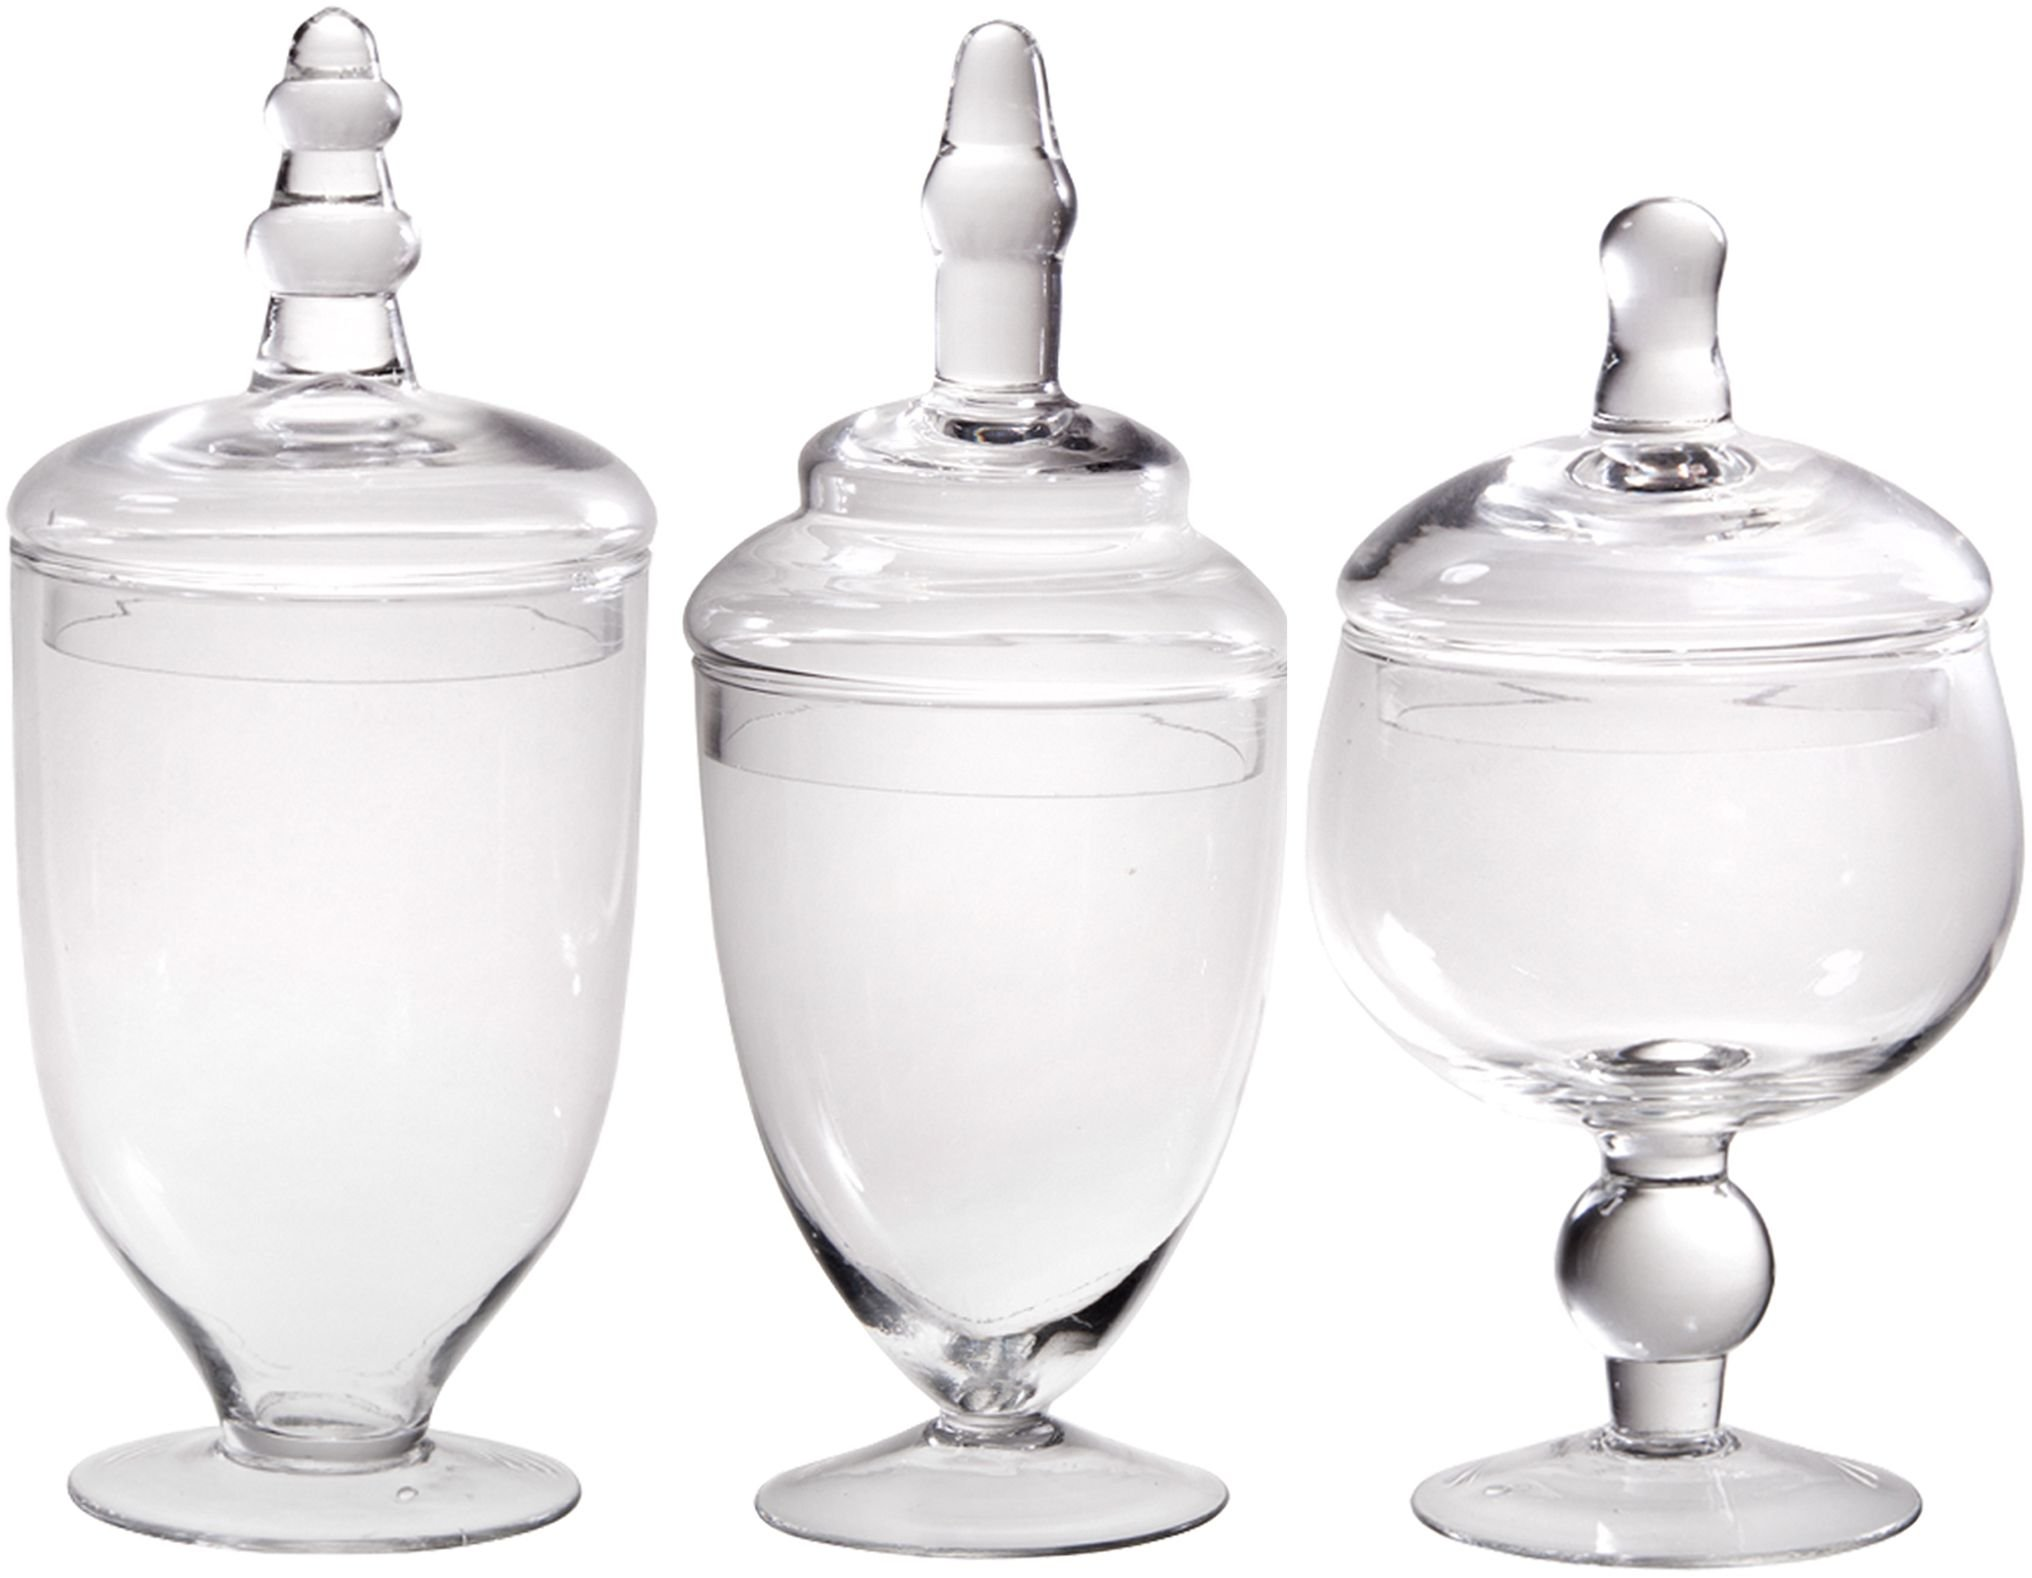 candy vases for candy buffet amazon com rh amazon com cheap vases for candy buffet cheap glass containers for candy buffet